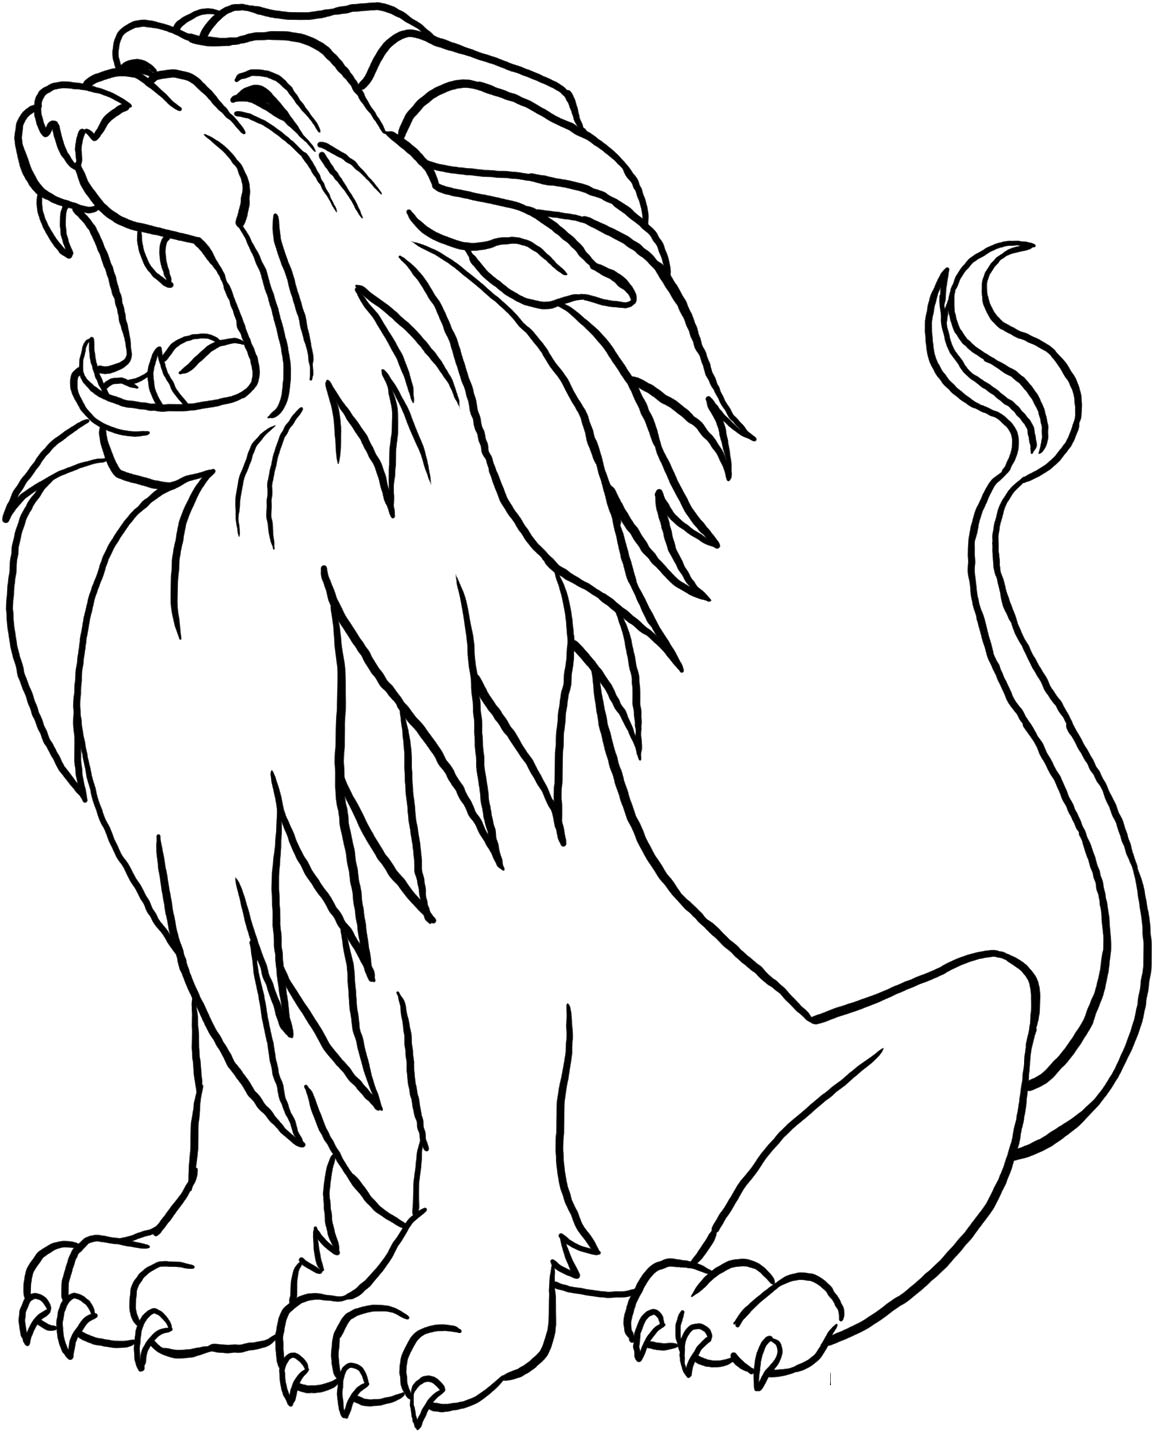 free coloring pages of lions - photo#3